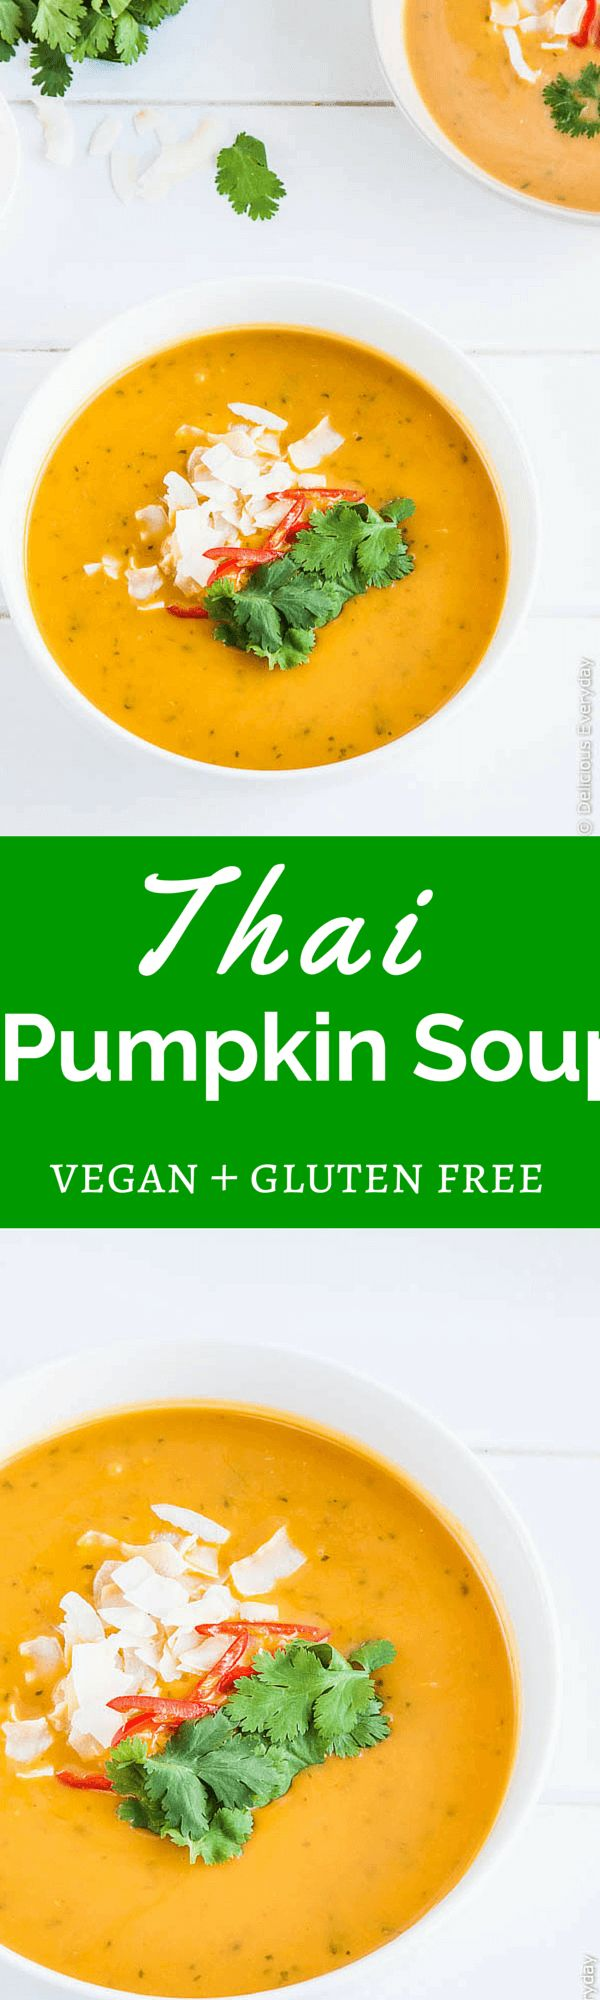 Thai-Style Pumpkin Soup with Coconut Milk - This easy vegan homemade soup is on the table in under 30 minutes. | Get the recipe at deliciouseveryday.com